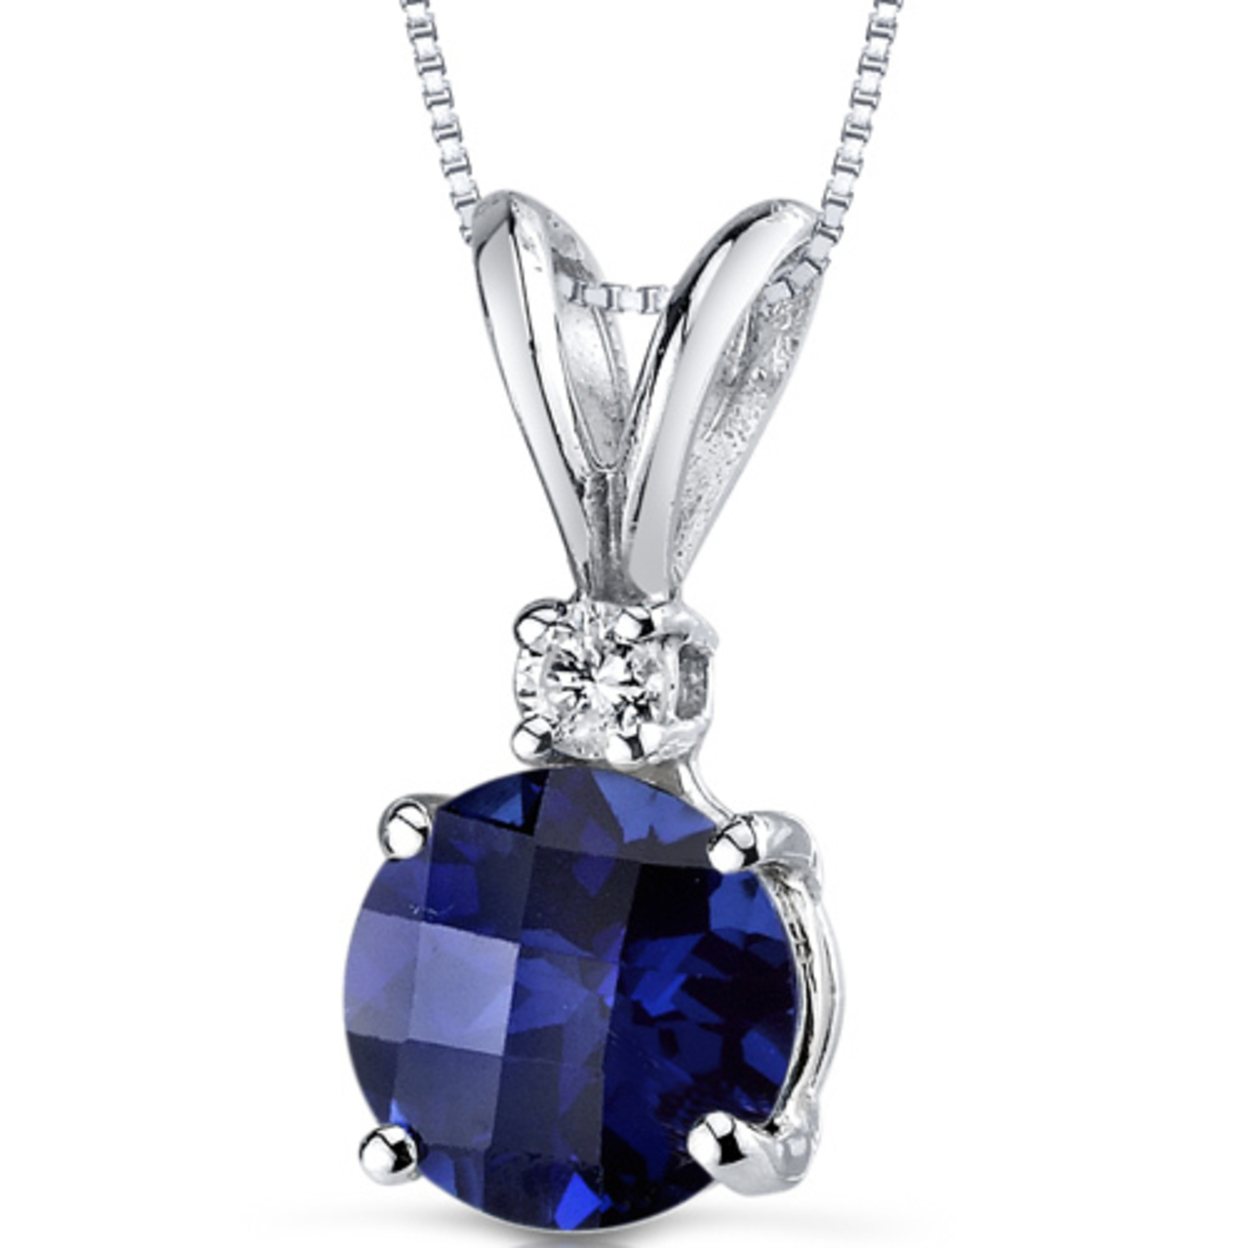 14 Karat White Gold Round Cut 1.50 Carats Created Blue Sapphire Diamond Pendant